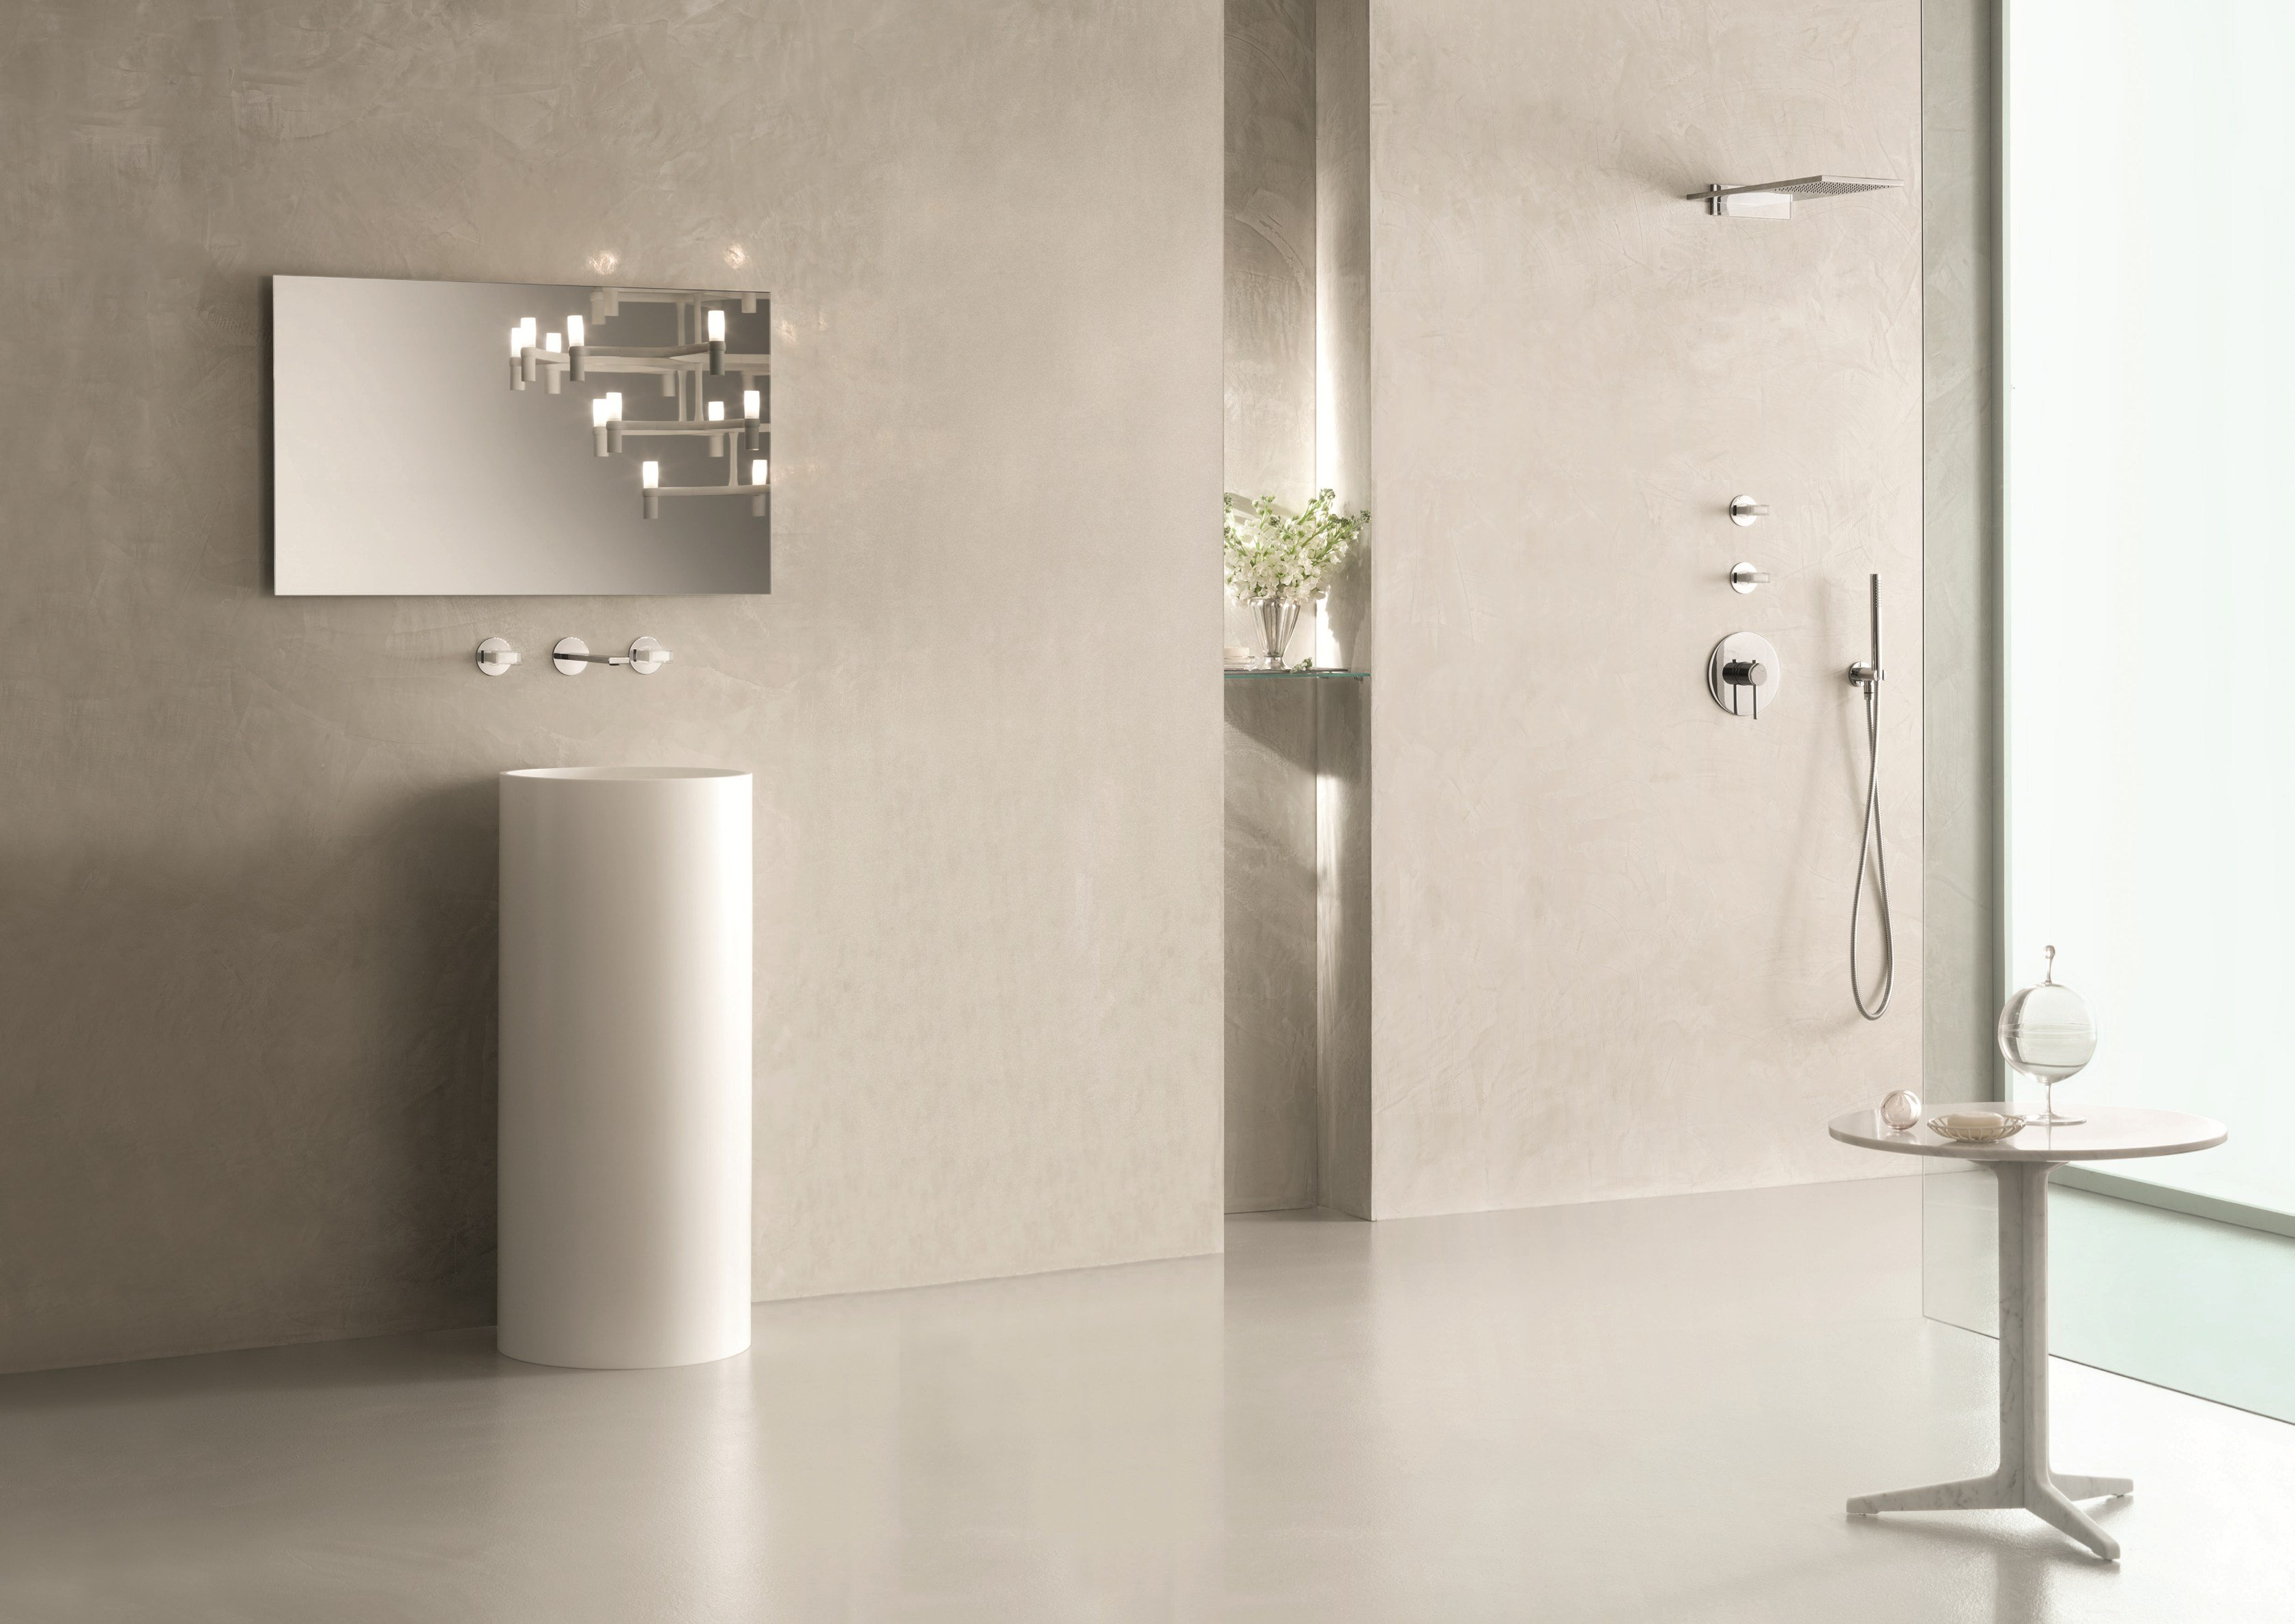 venezia in wall mounted washbasin tap by fantini rubinetti. Black Bedroom Furniture Sets. Home Design Ideas